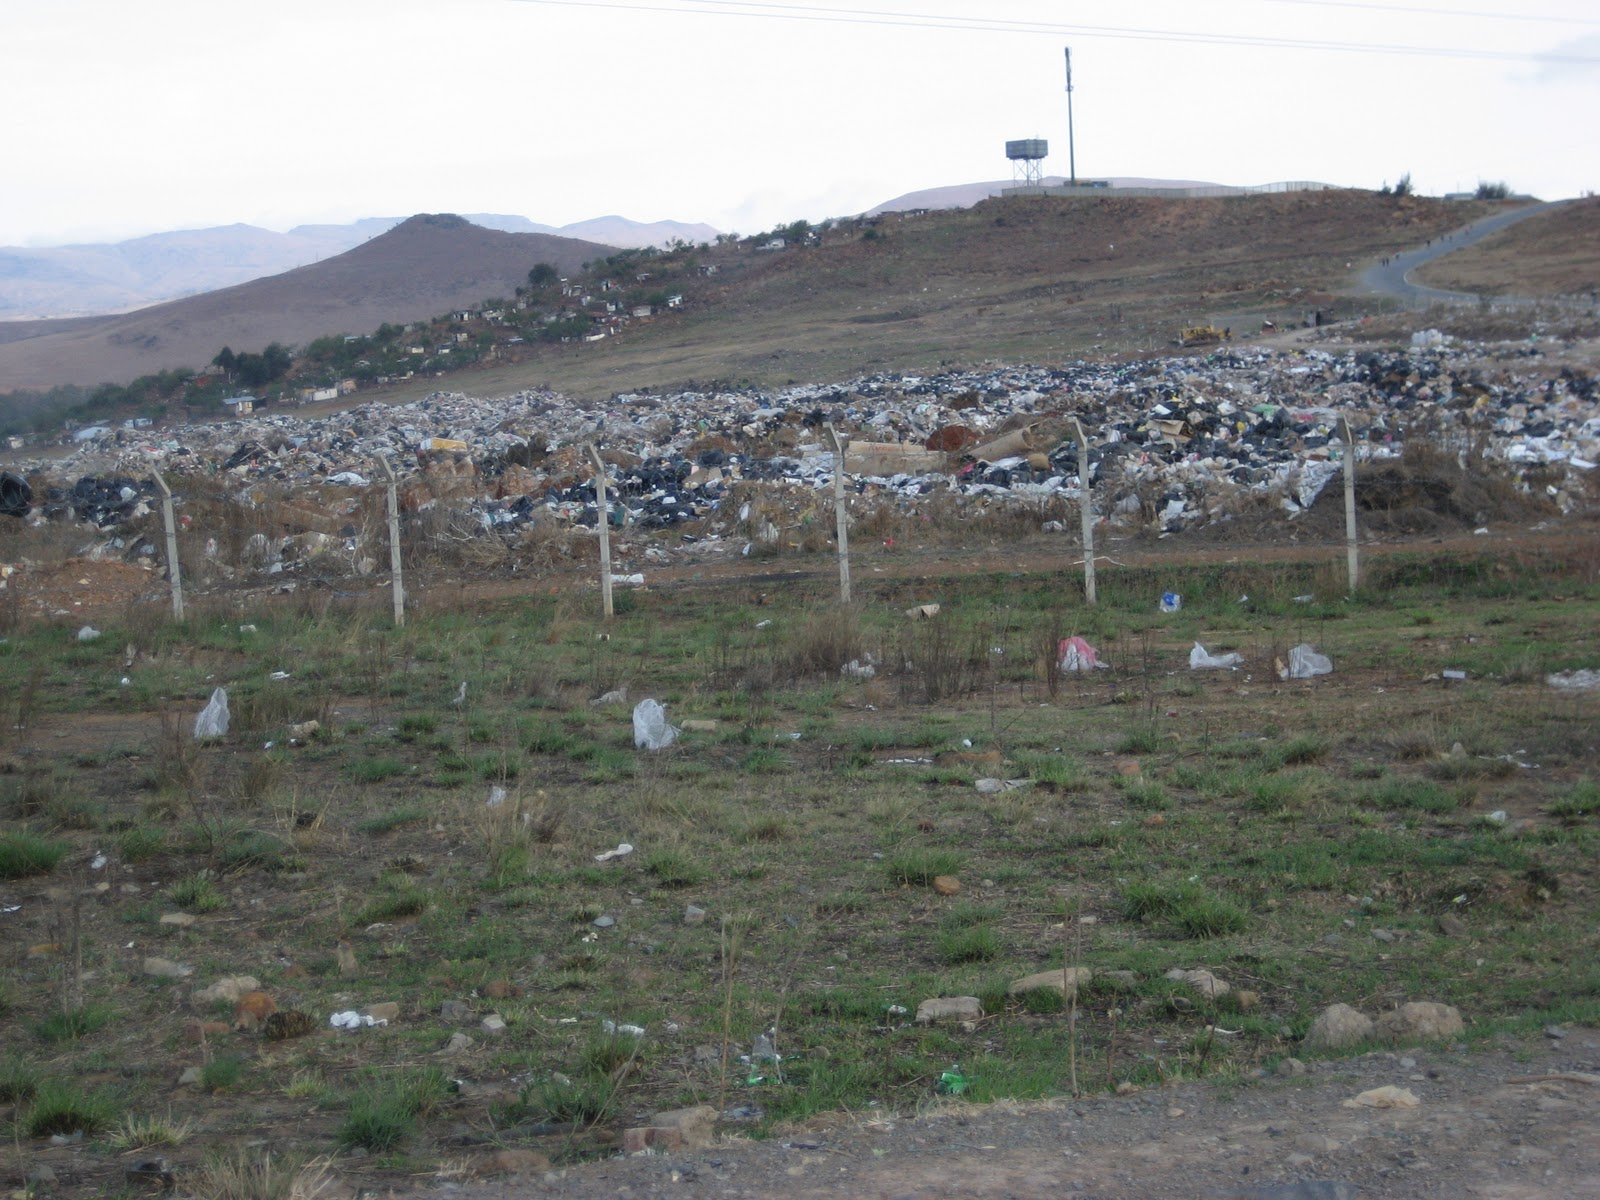 Kokstad South Africa  city photos : This is the Kokstad dump site that is located in Shayamoya. You will ...